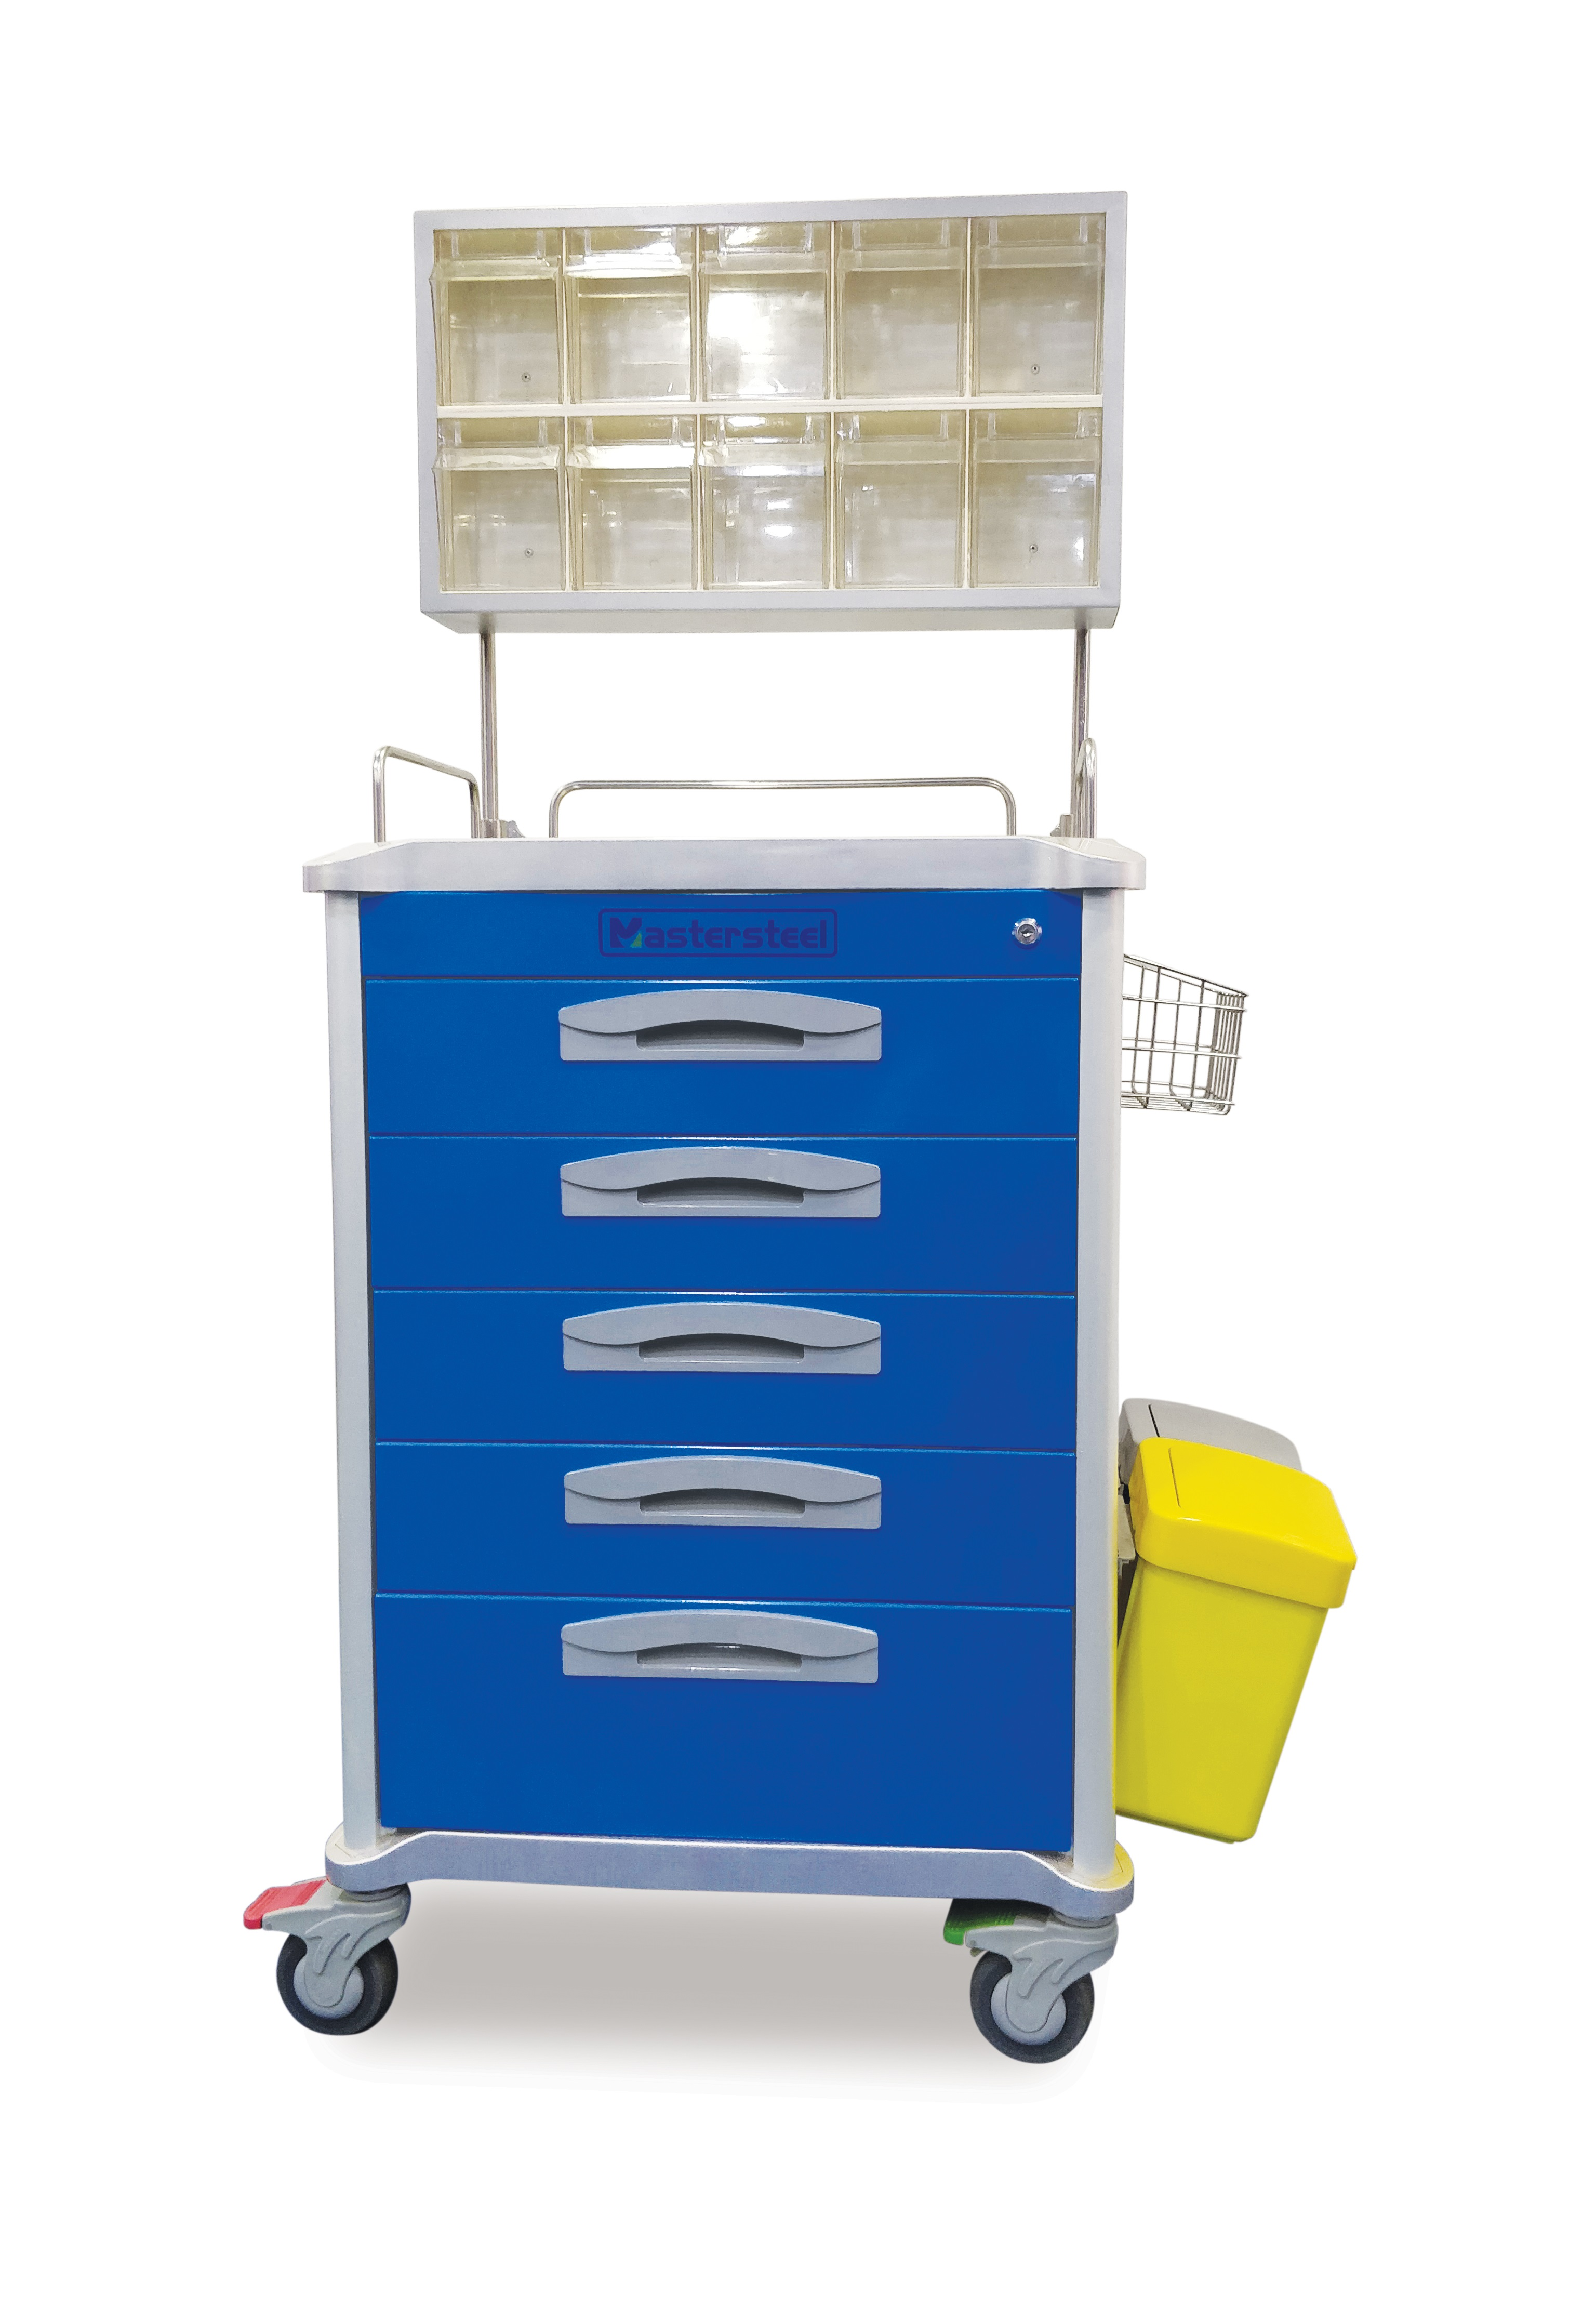 ANAESTHETIC CART (MS-6400)